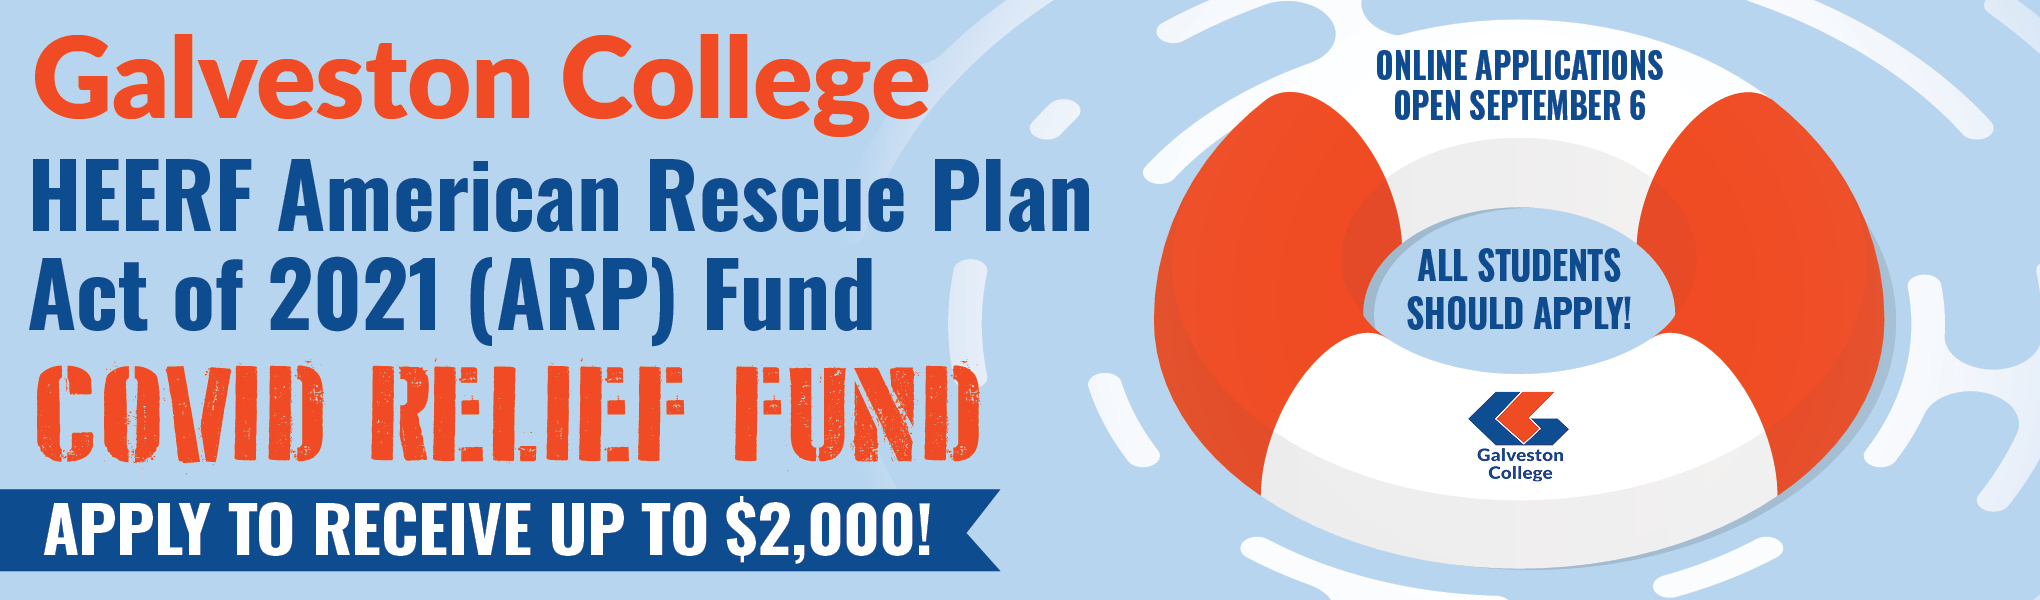 American Rescue Plan Act of 2021 Fund